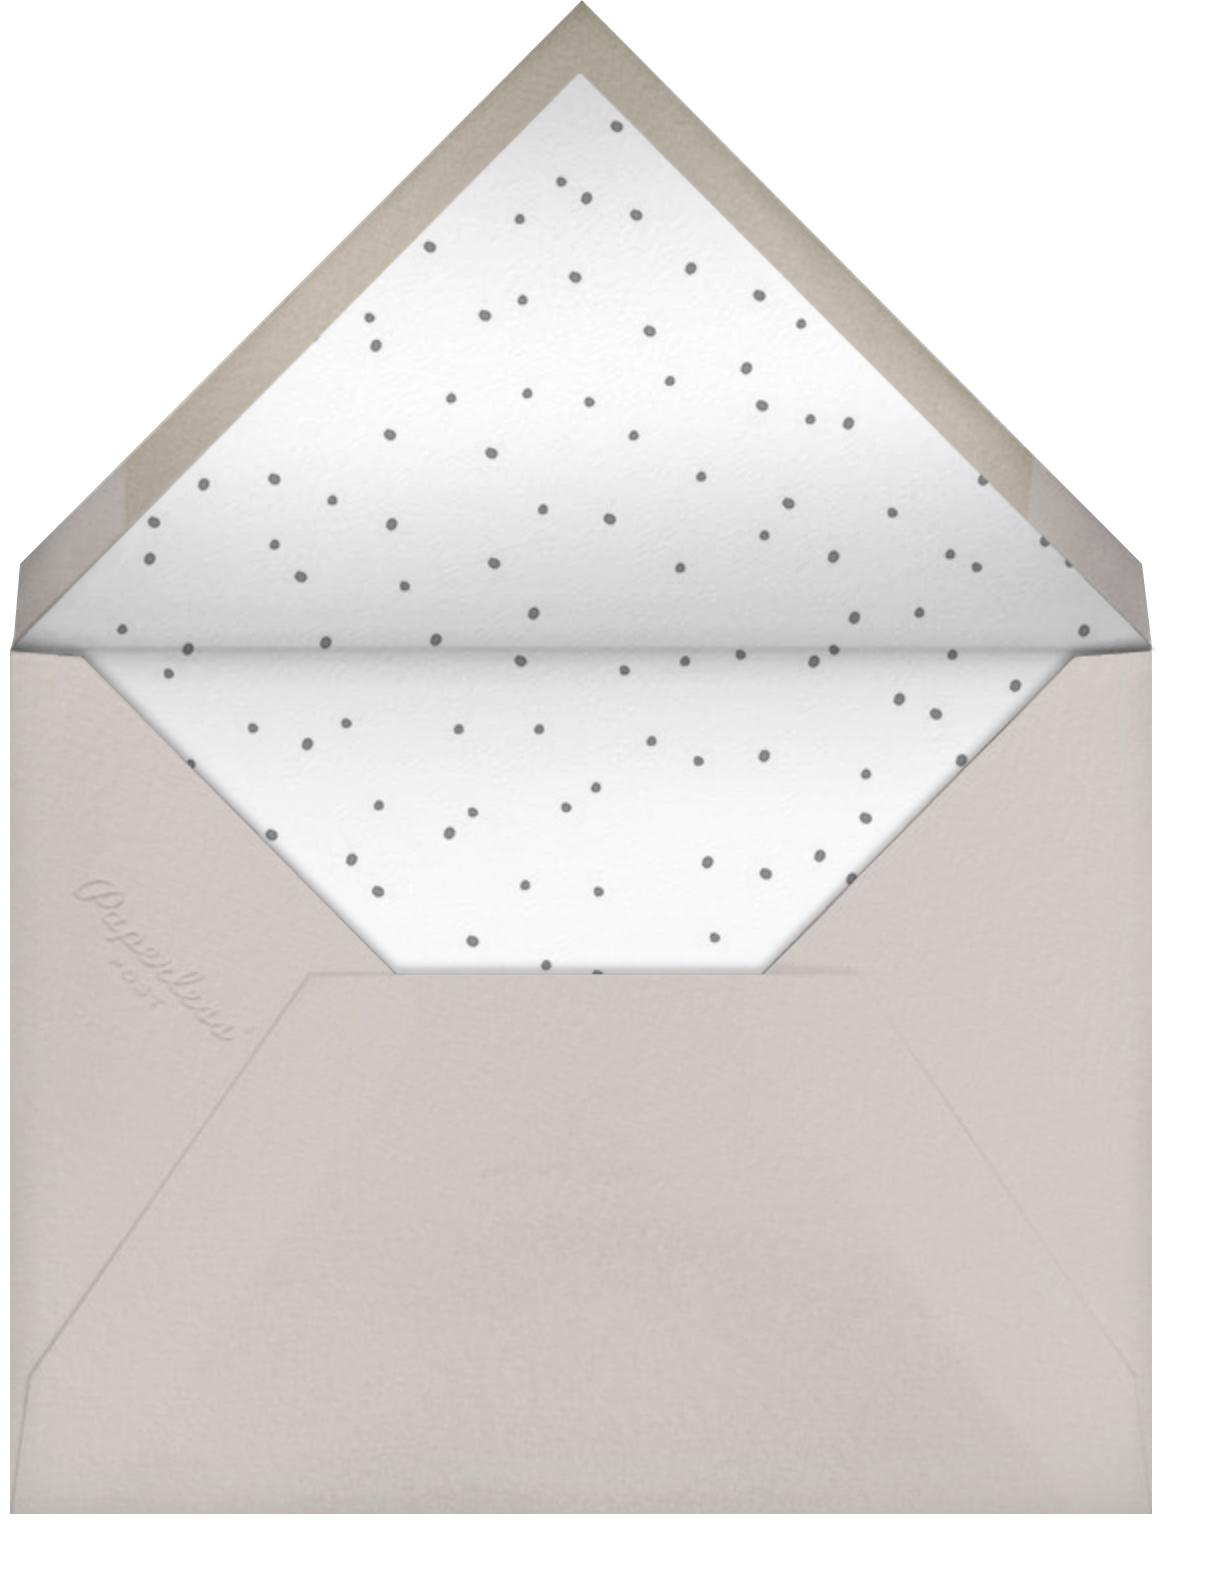 With Love From Baby (Tall) - Blue - Linda and Harriett - Birth - envelope back